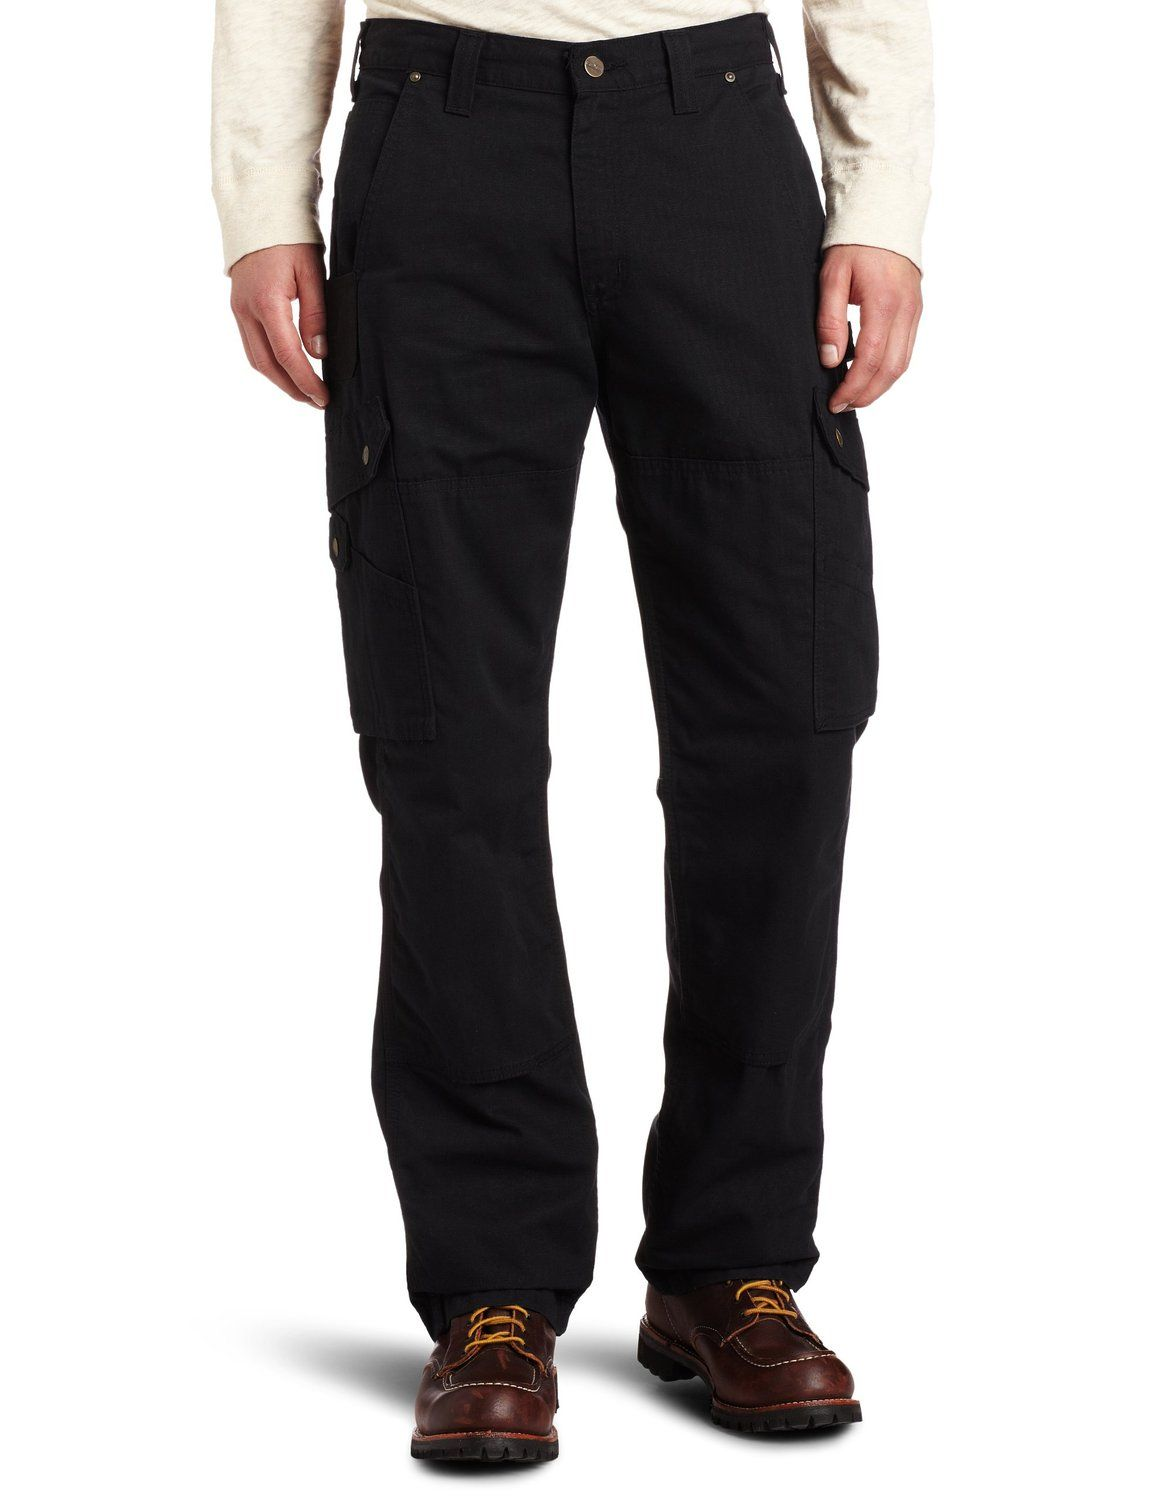 Carhartt mens cotton ripstop relaxed fit work